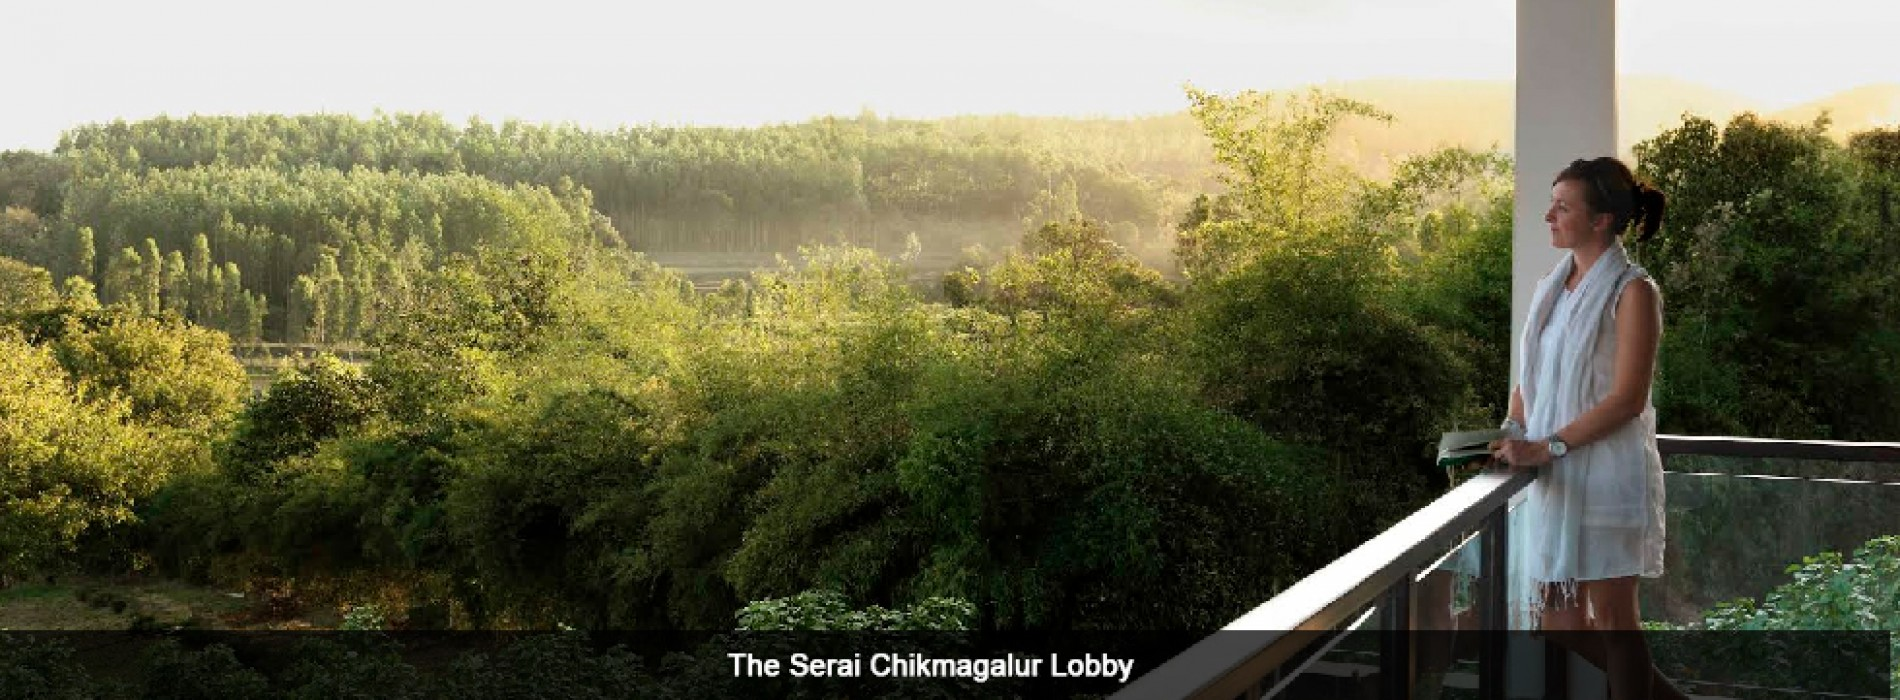 Unweekend your getaways this March with The Serai Benefits starting from Rs. 27000/- onwards